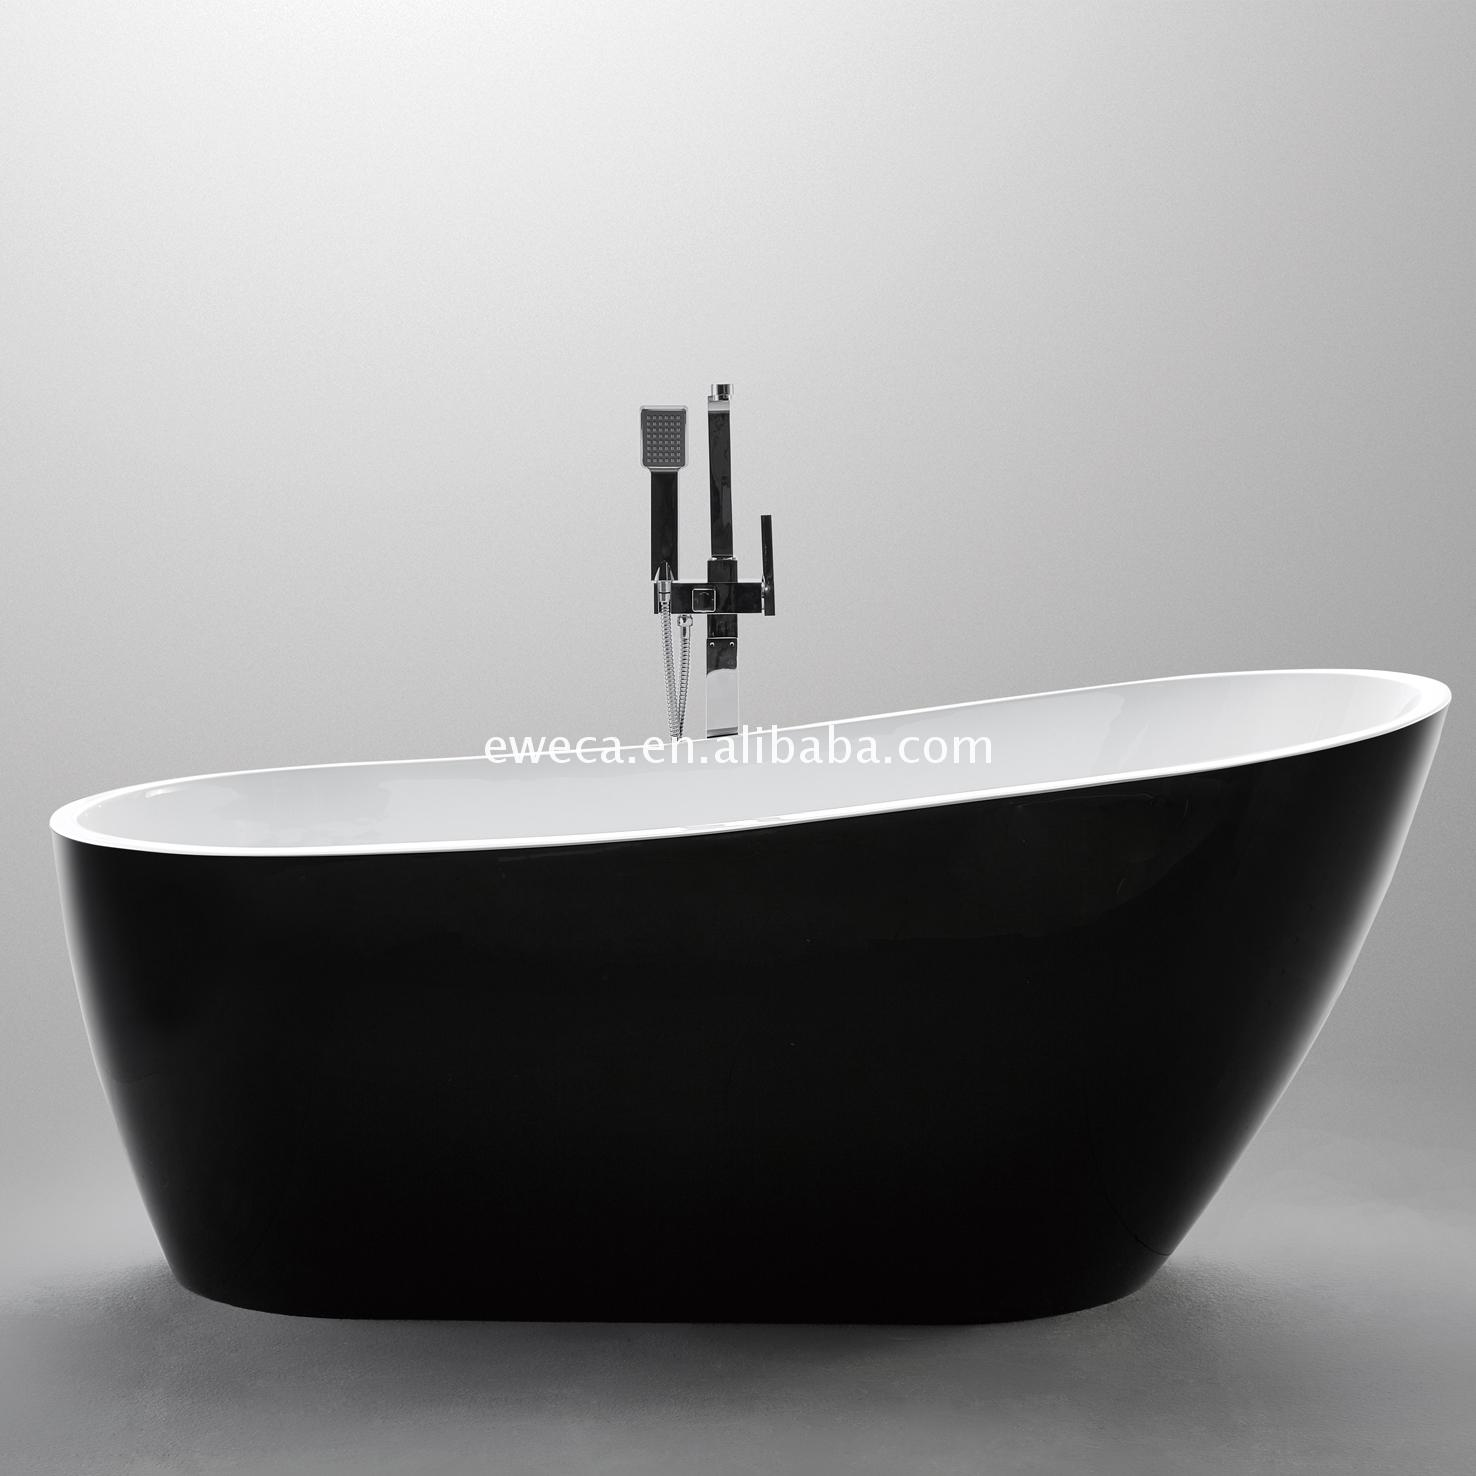 shower for wonderful lowes depot bathroom bathtubs home costco combo tubs bath pedestal cheap bathtub cost jetted family mobile soaking jacuzzi your garden installation menards with at tub homes